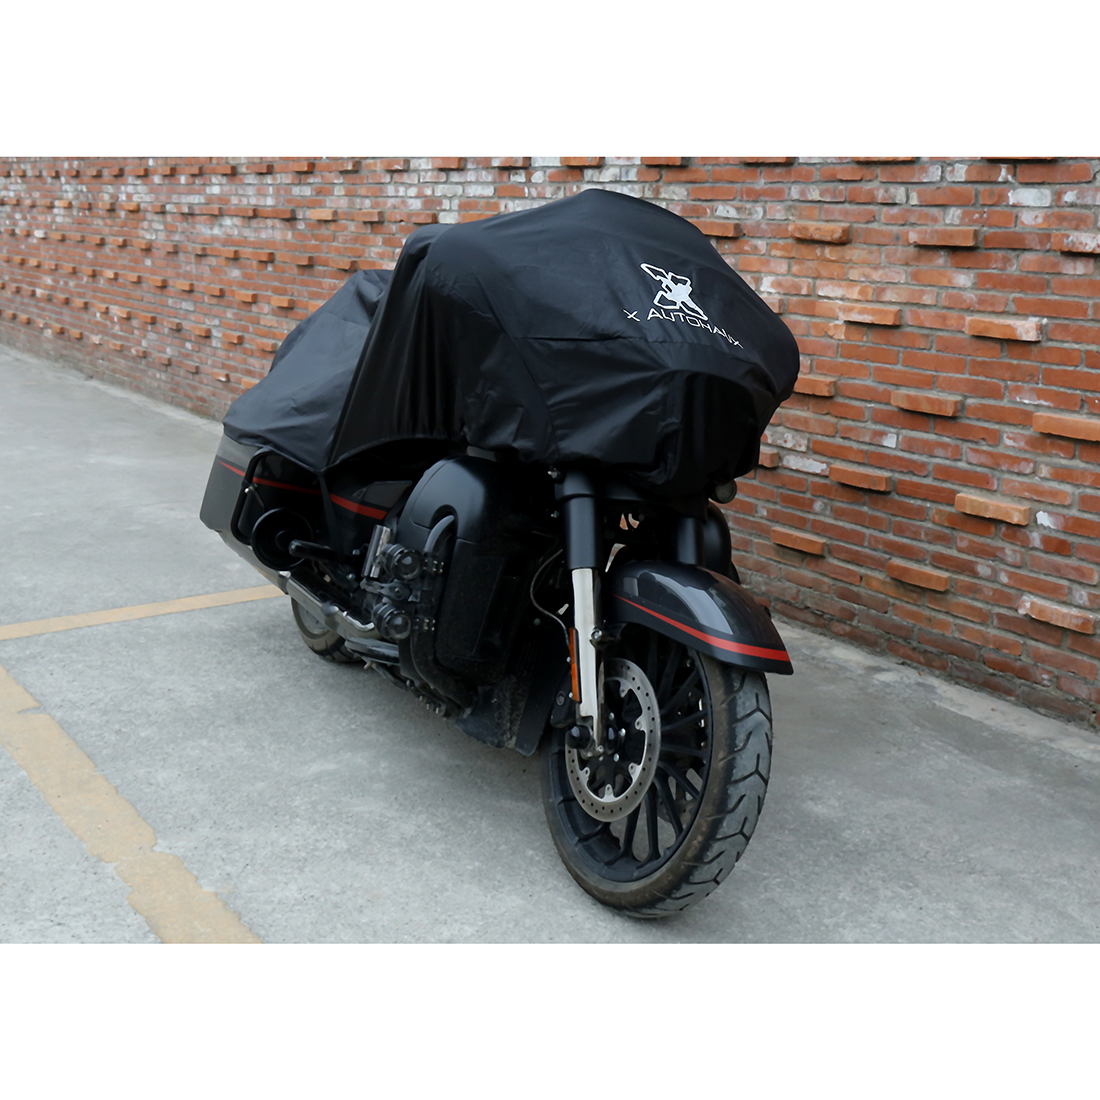 XXL Waterproof Motorcycle Cover For Harley Road King Classic FLHRC FLHR XL883